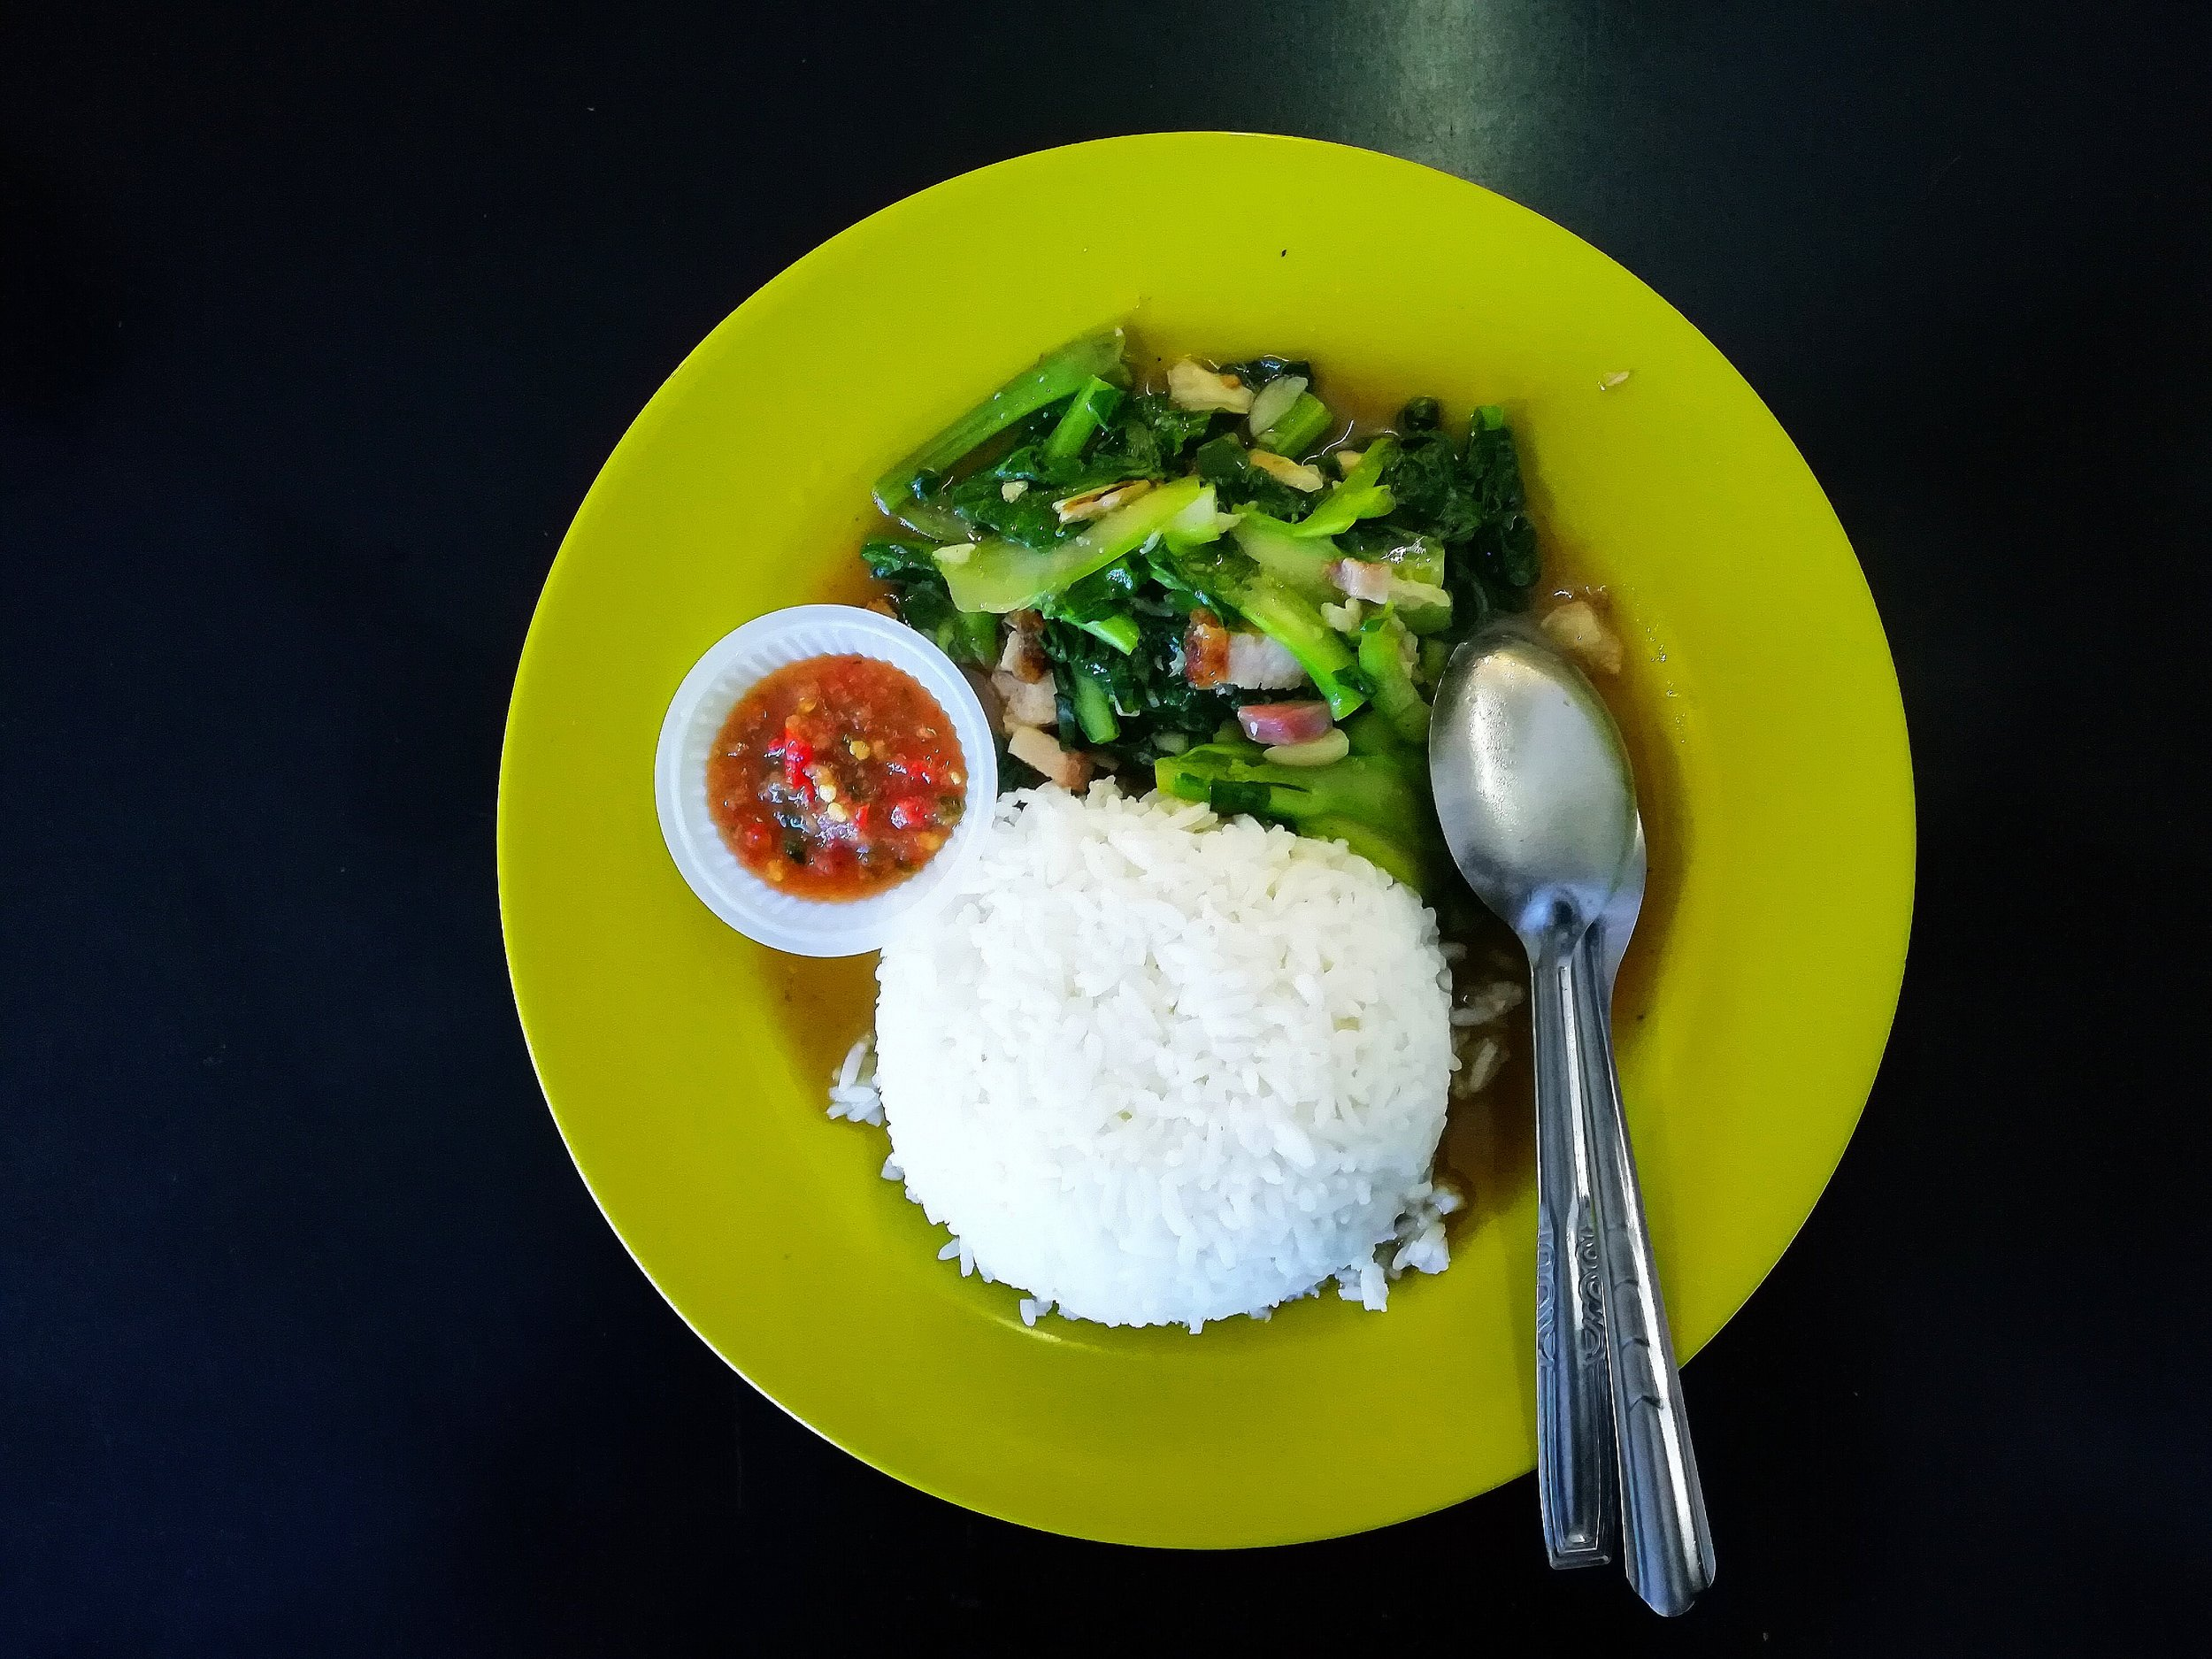 Penang food thai pork rice with veges